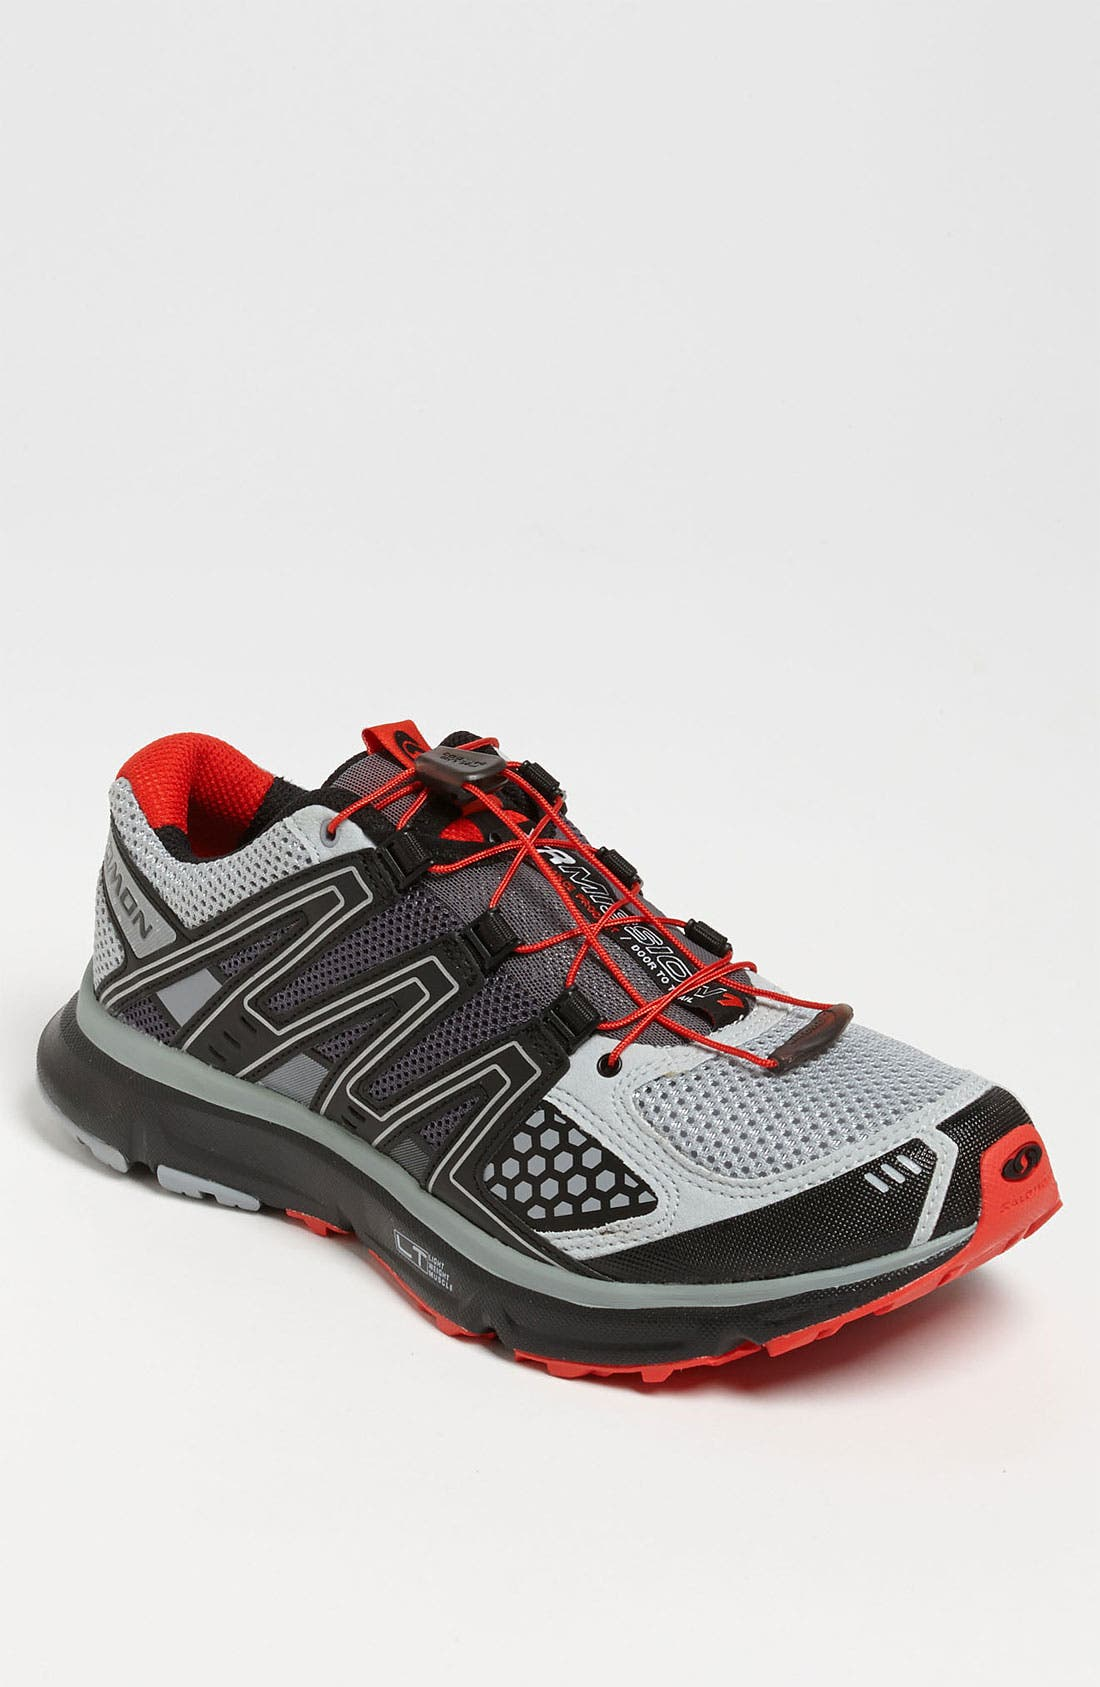 Main Image - Salomon 'XR Mission' Running Shoe (Men)